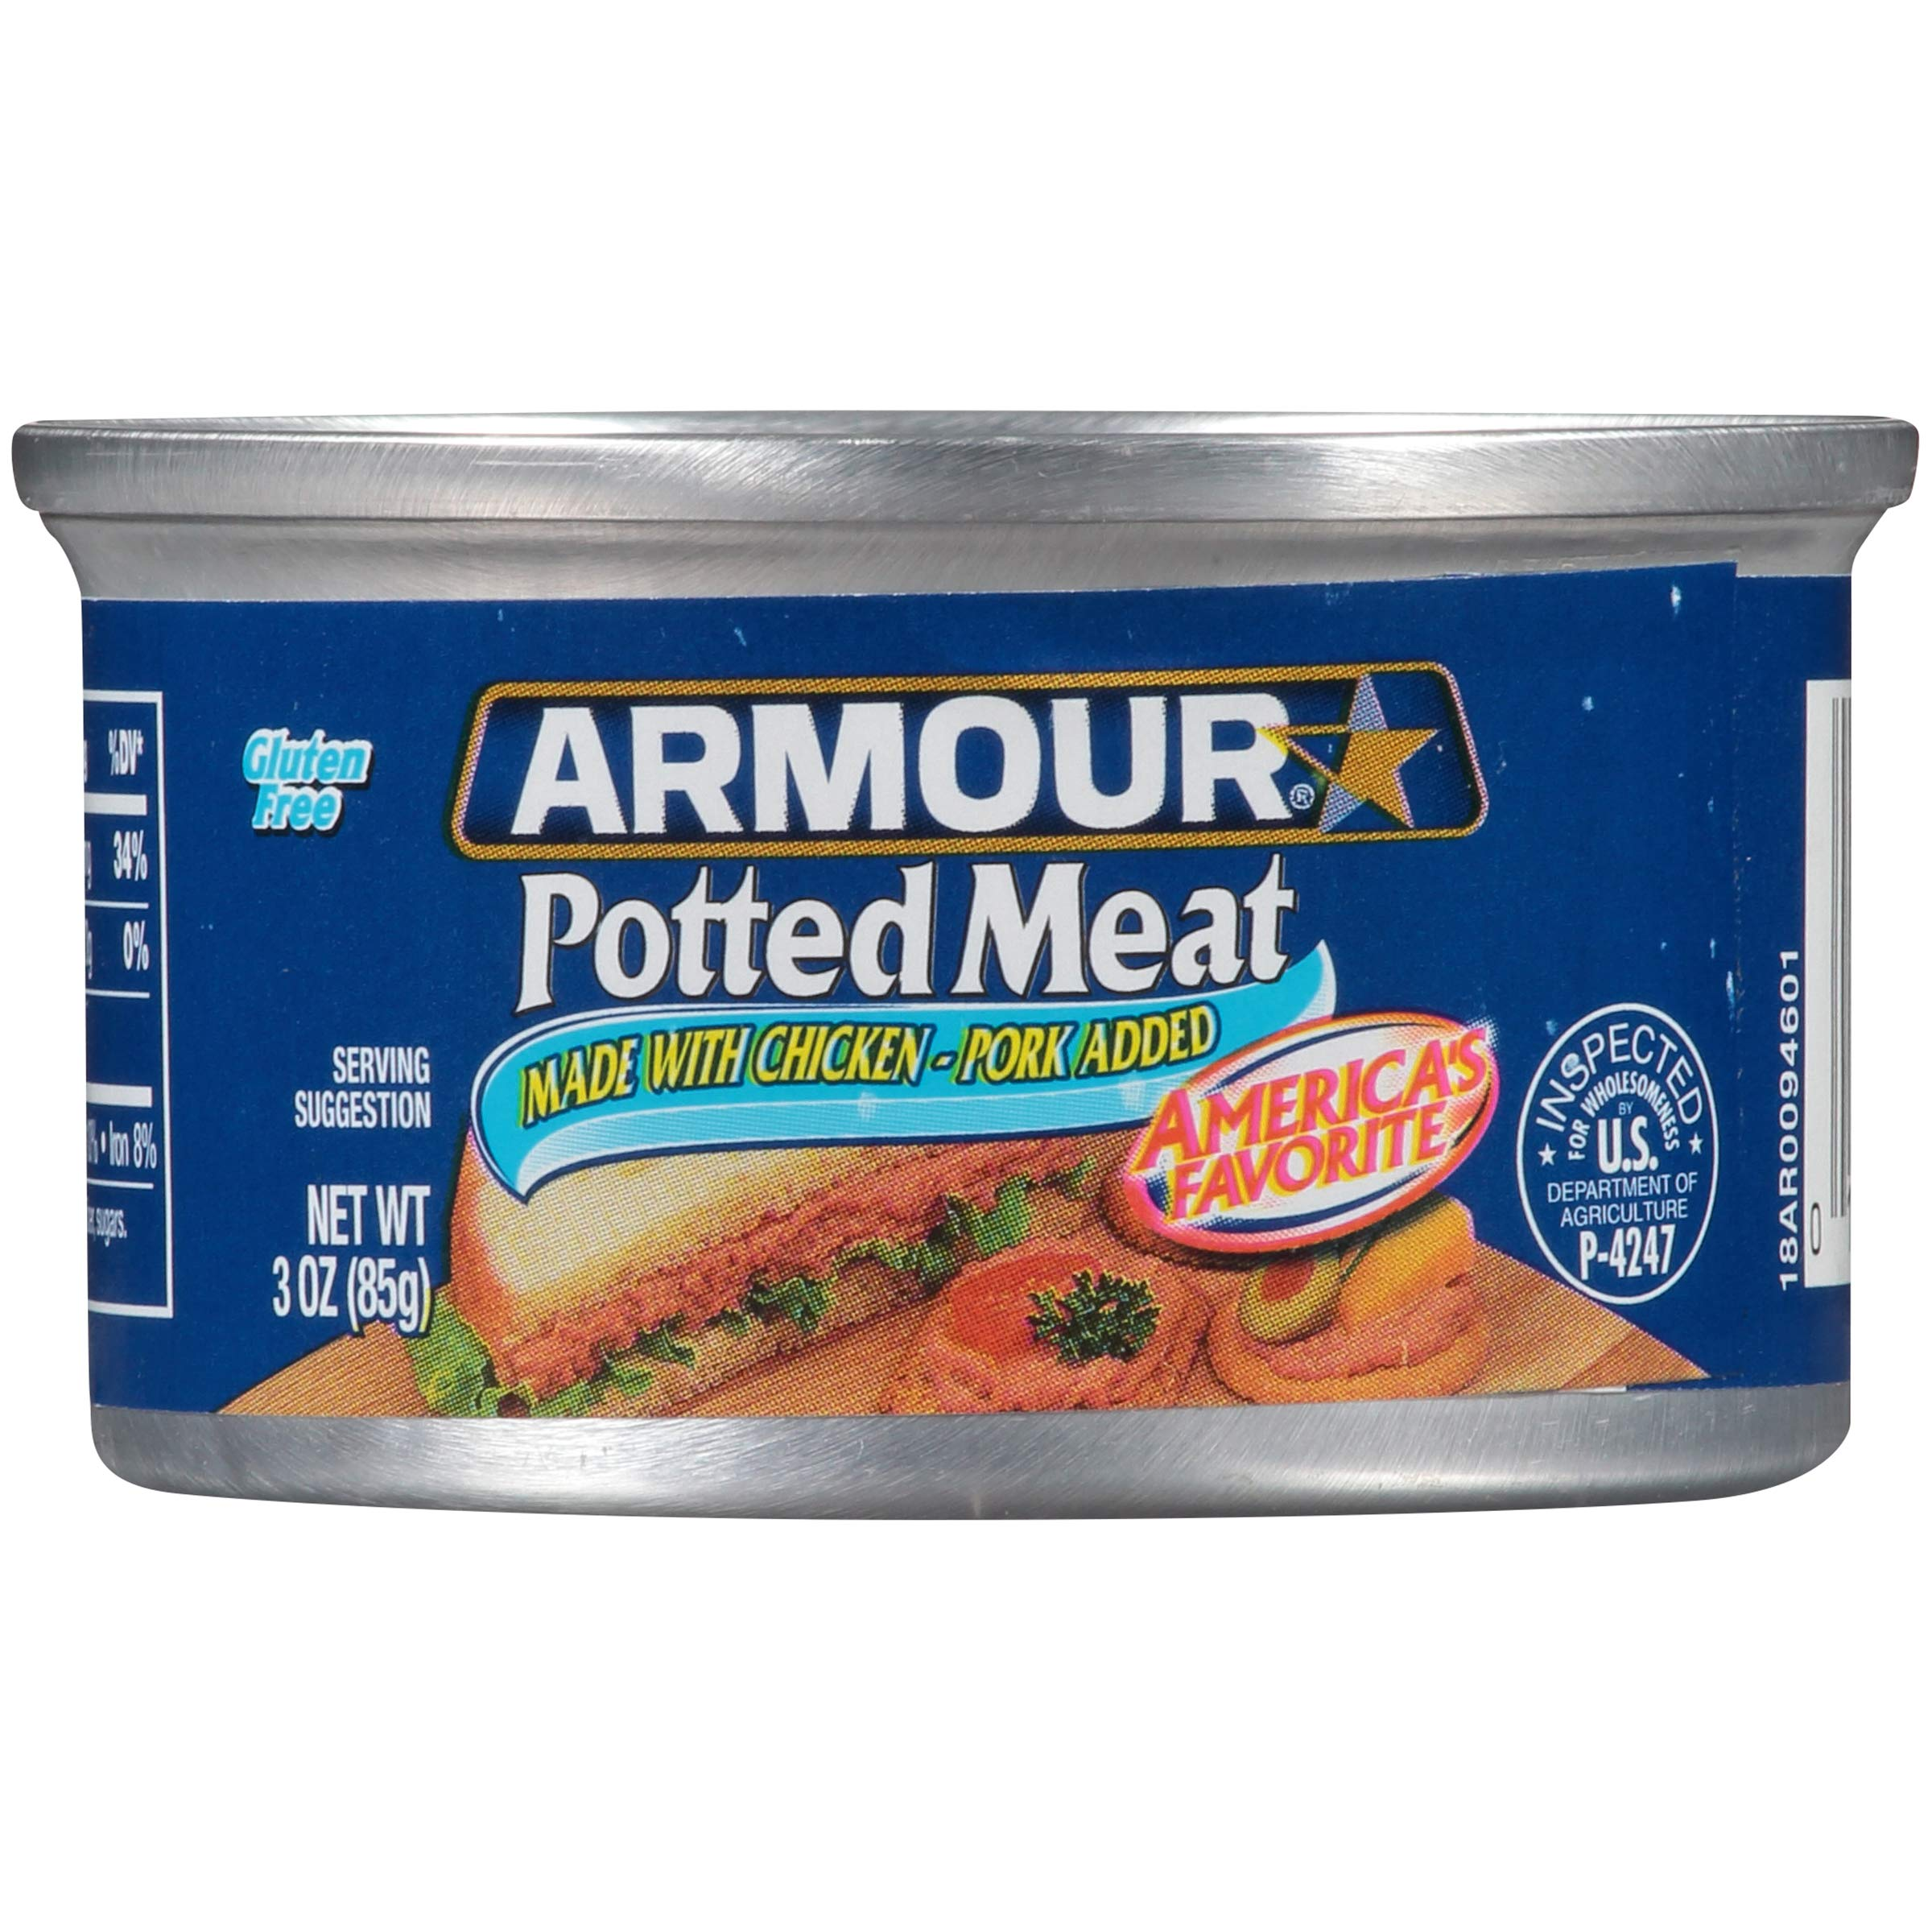 Armour Potted Meat, Chicken and Pork, 3 oz